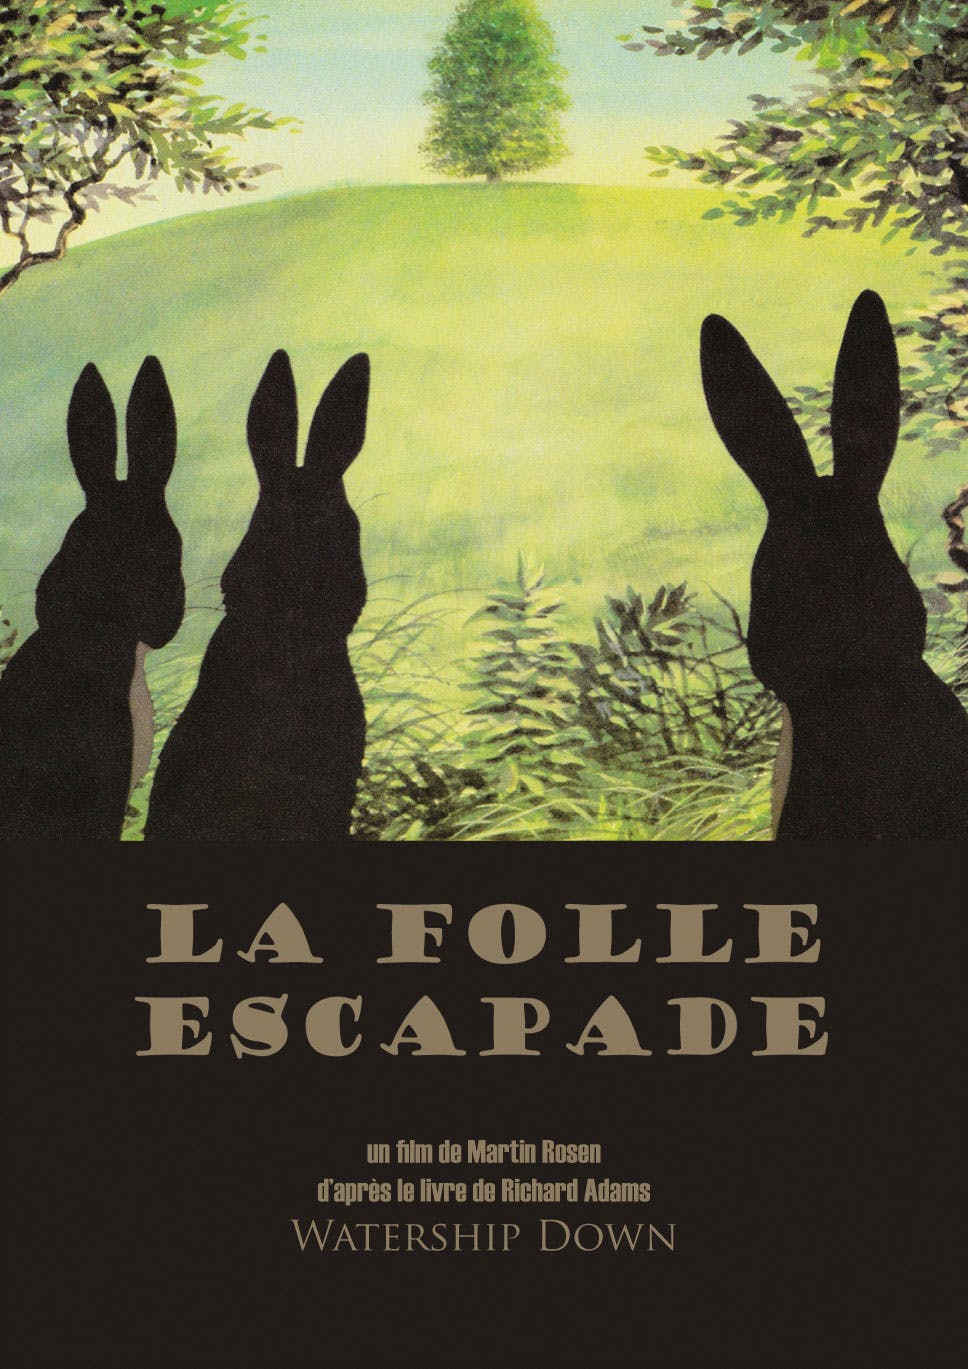 Affiche La folle escapade